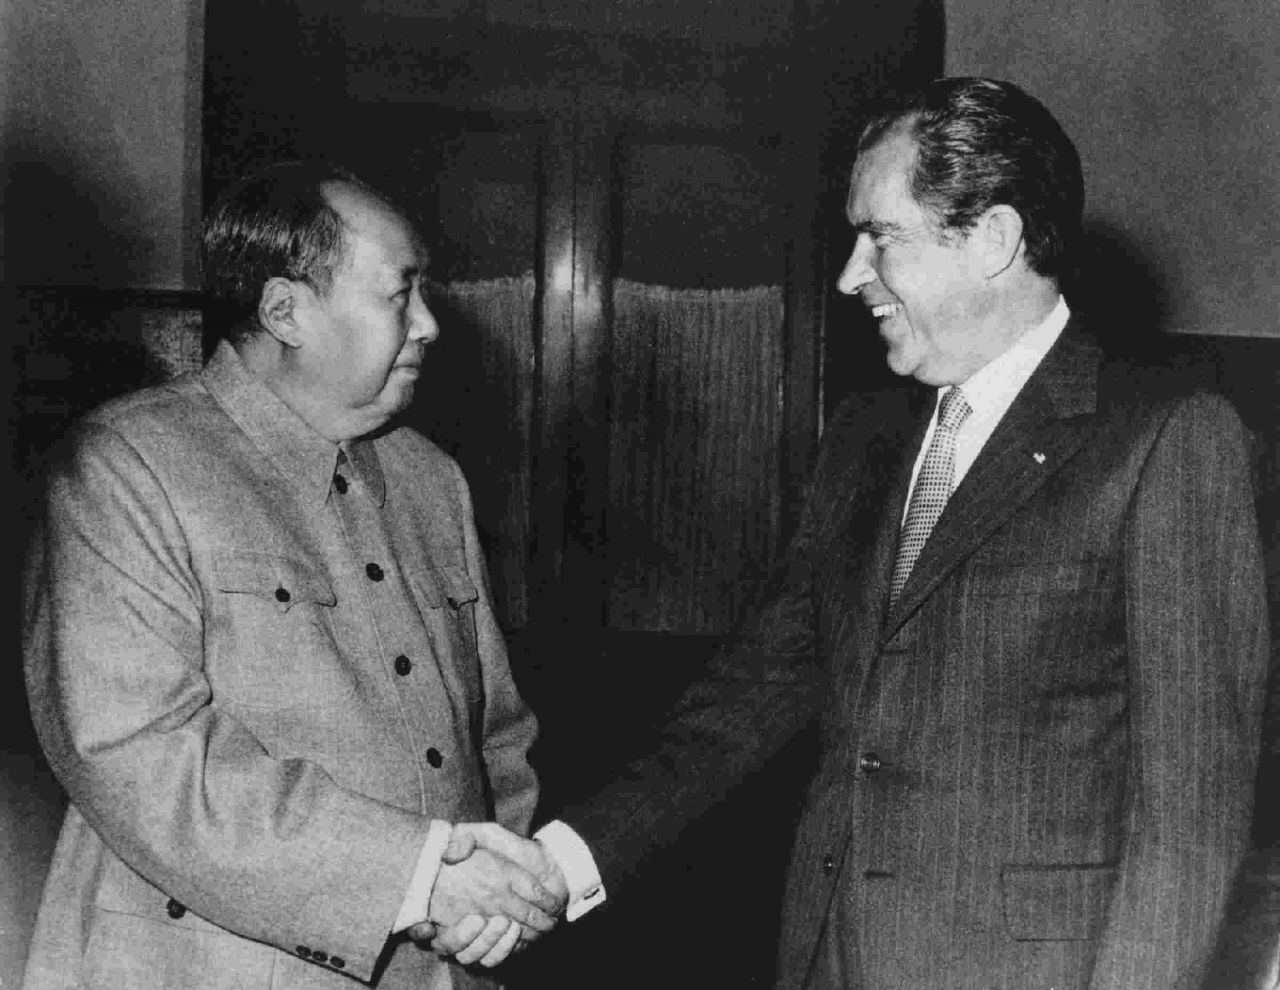 On February 21, 1972 President Nixon arrived in Beijing, the first American head of state ever to set foot on the Chinese Mainland.